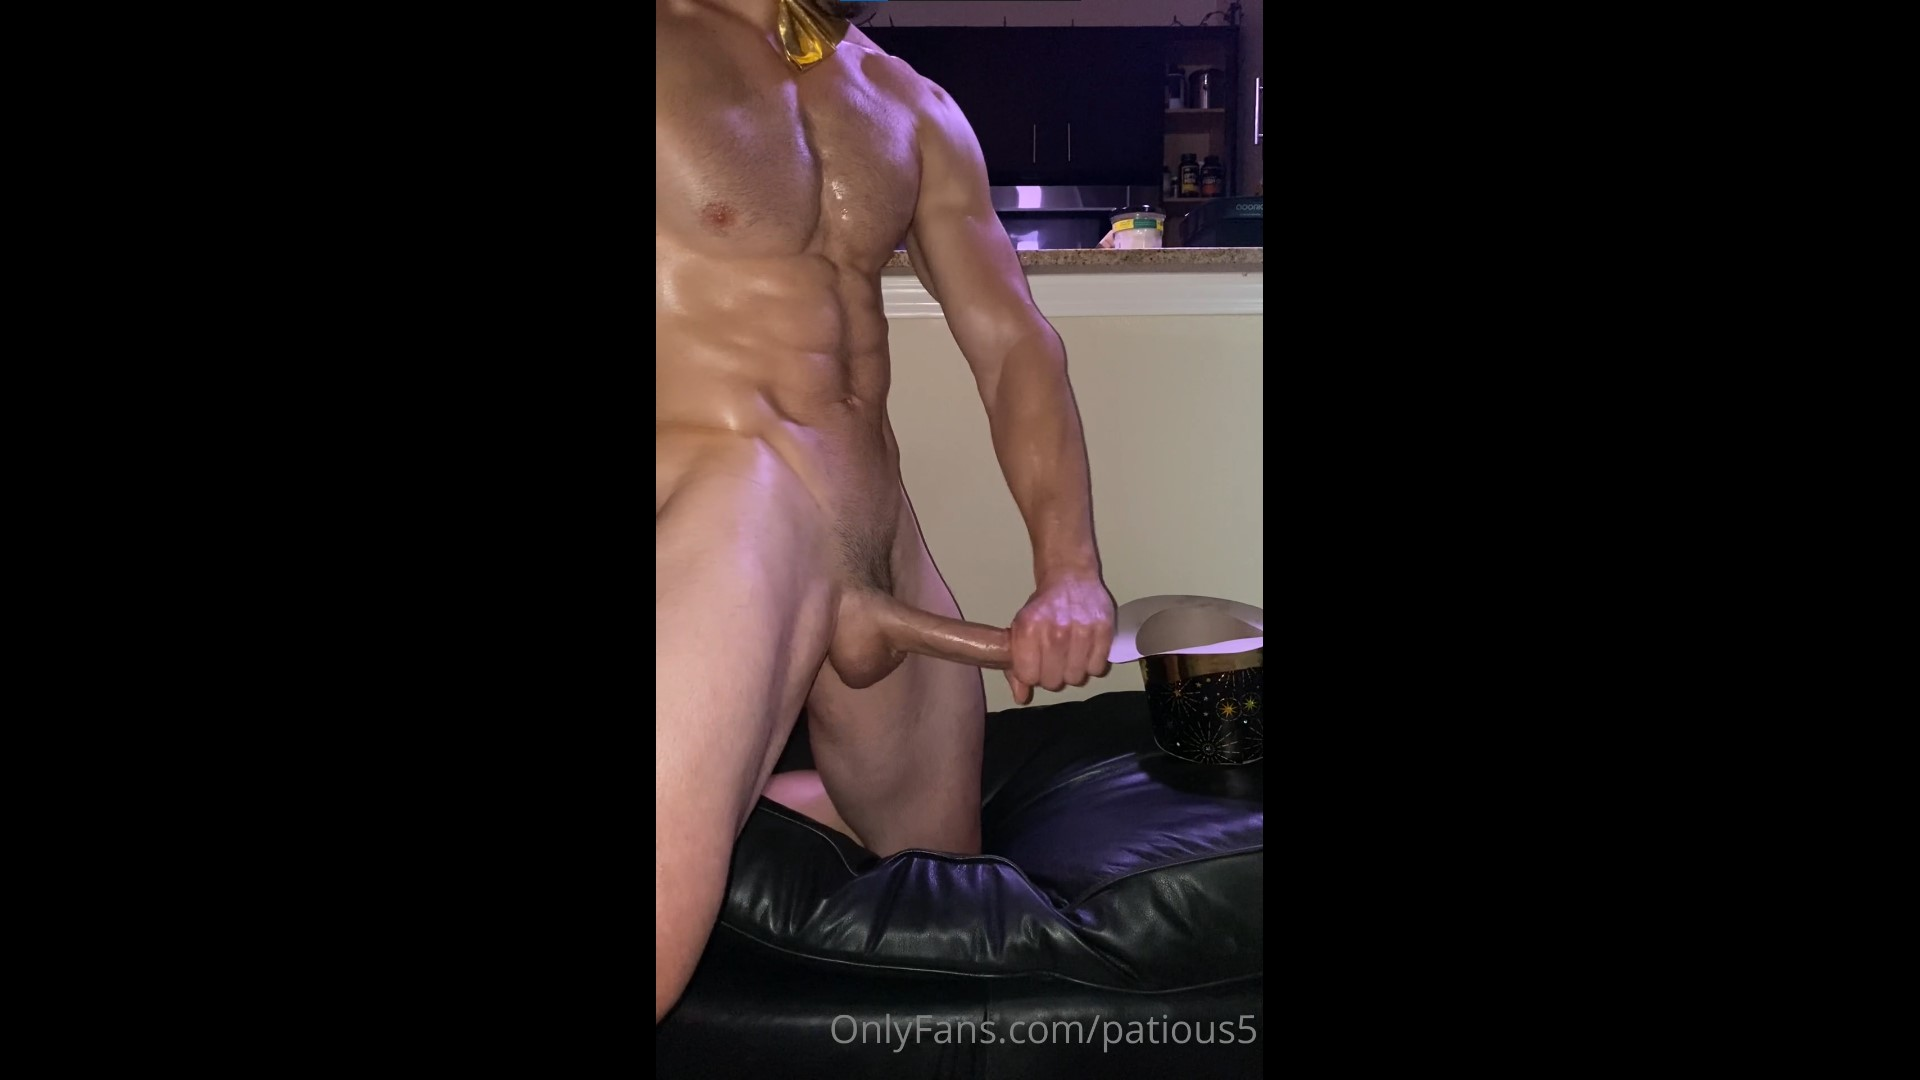 Jerking off after a party - patious5